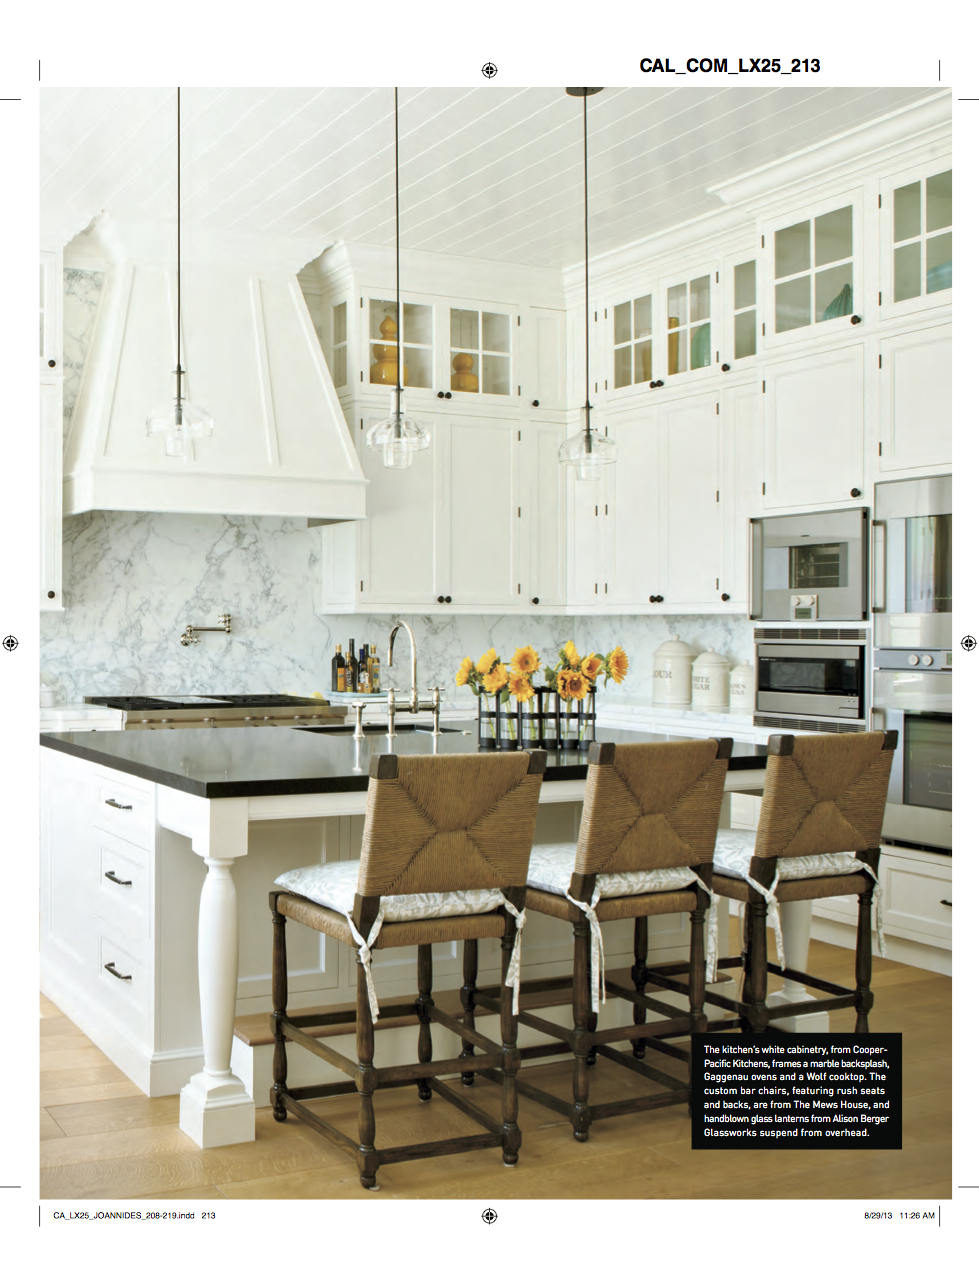 LUXE P.6